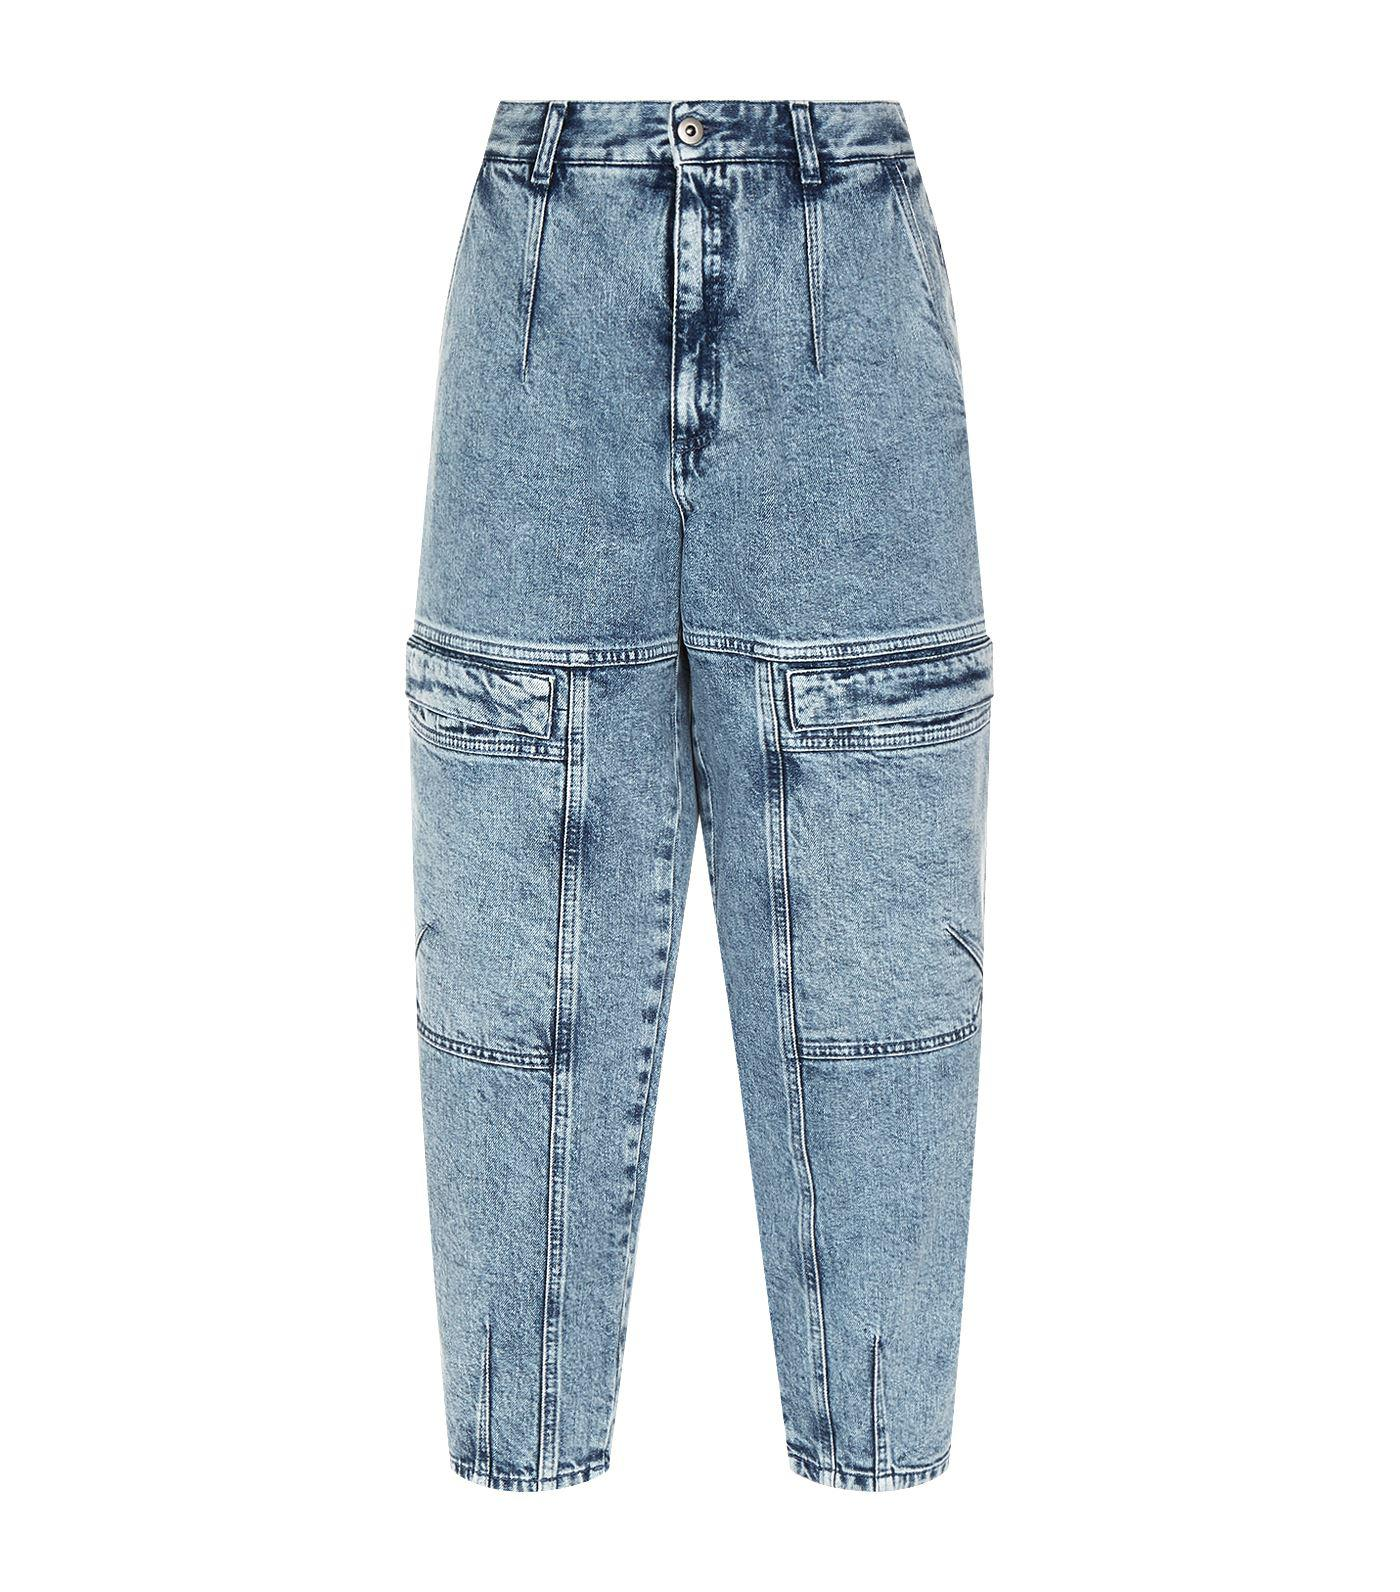 Free Shipping New Arrival Pick A Best For Sale Leanna jeans Stella McCartney Popular And Cheap Low Price Sale Outlet Discount Authentic h95vNXtwI6